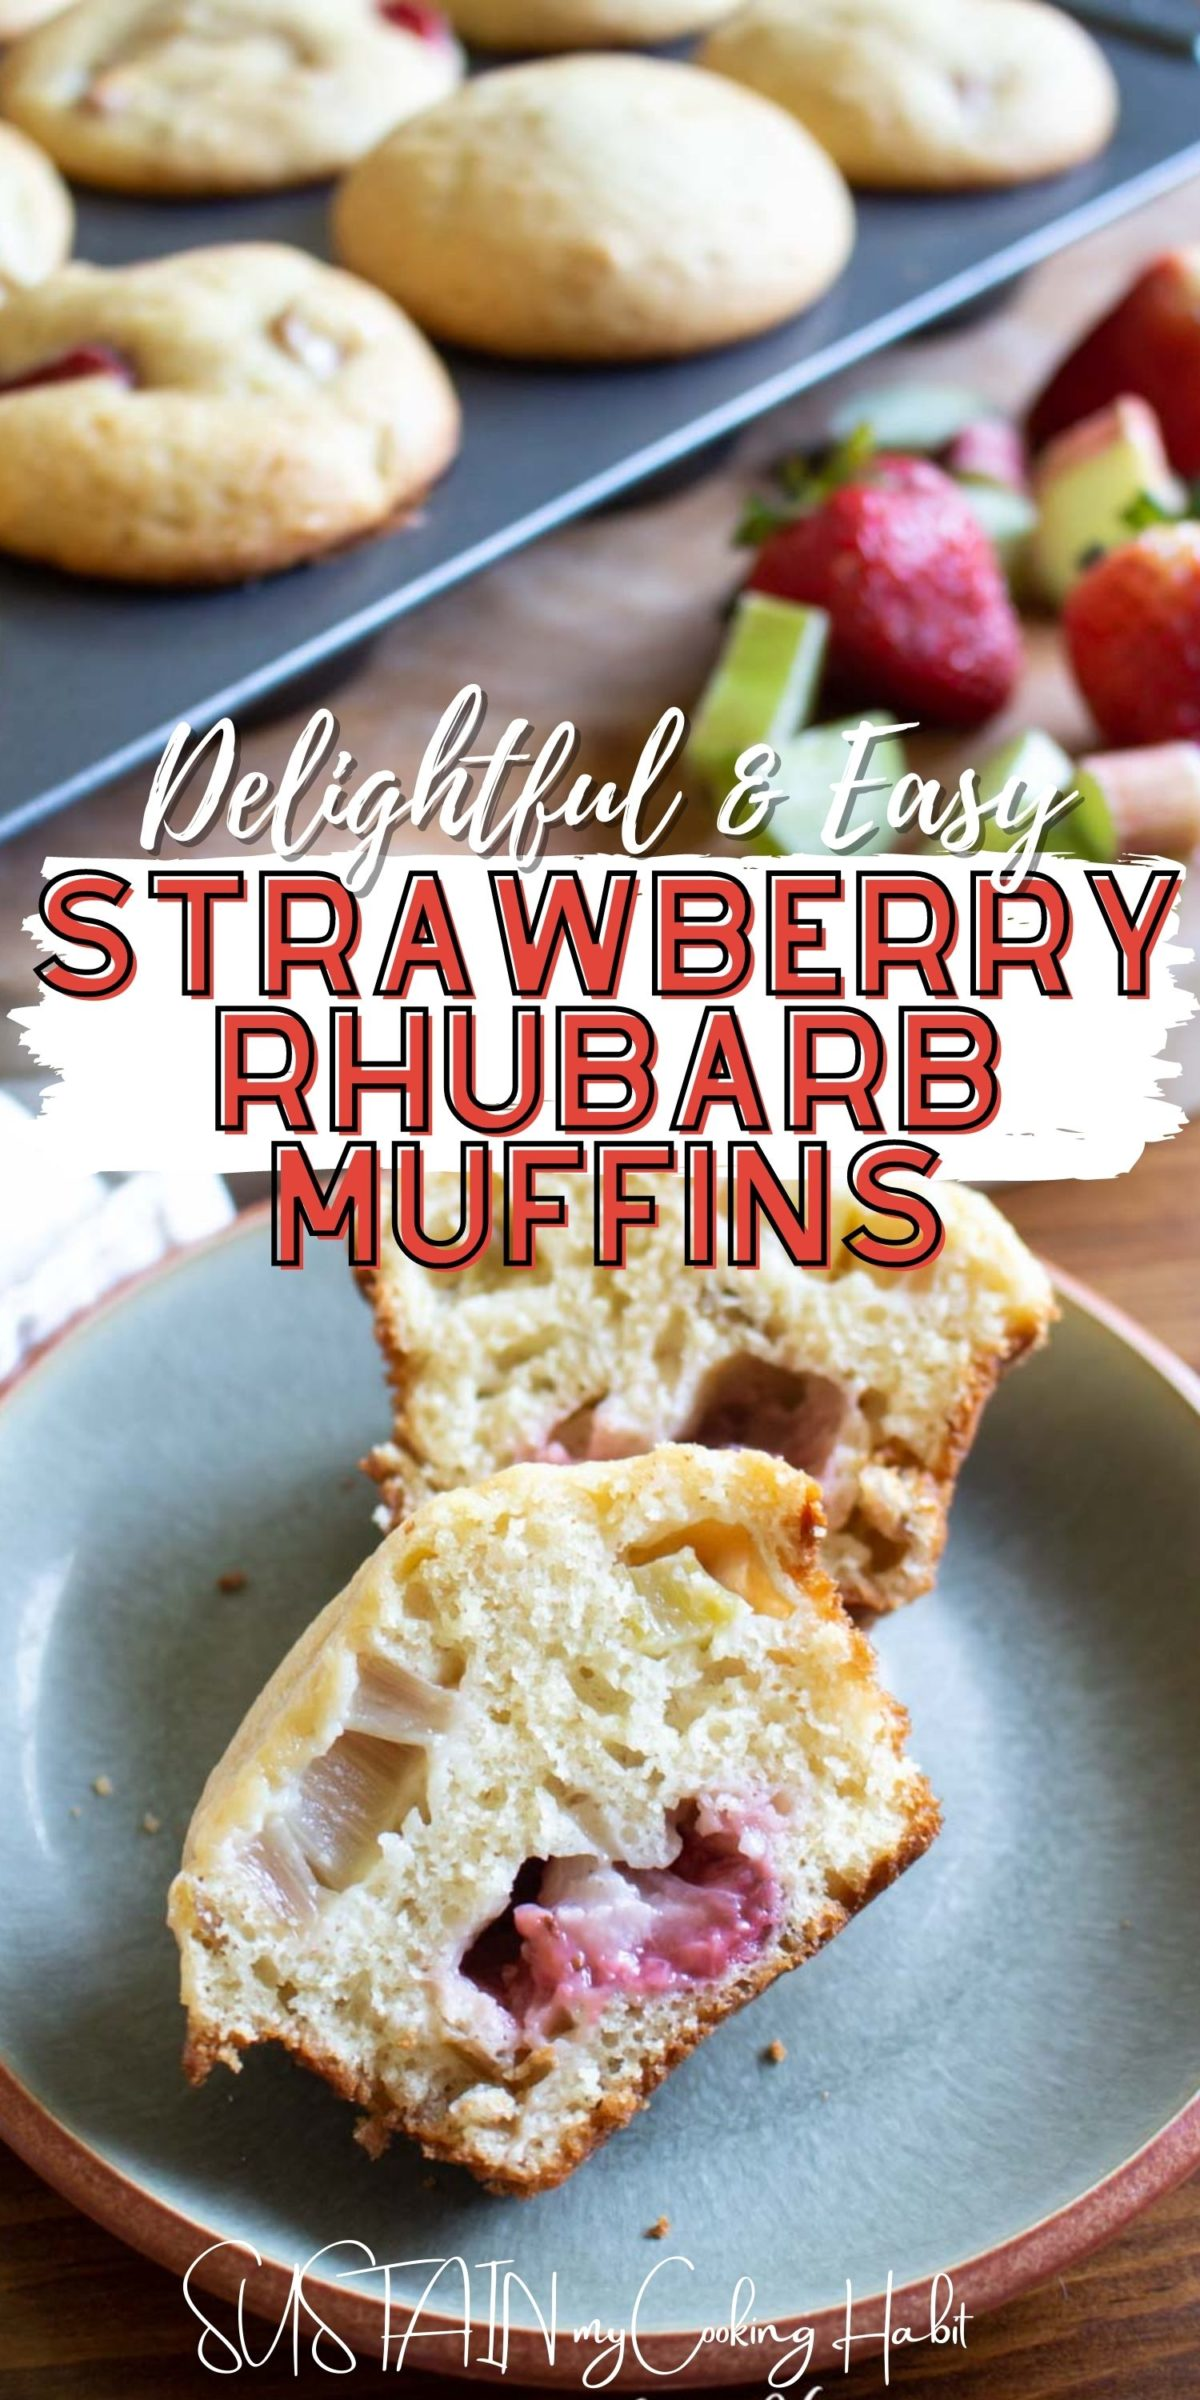 Strawberry Rhubarb muffin cut in half with text overlay.